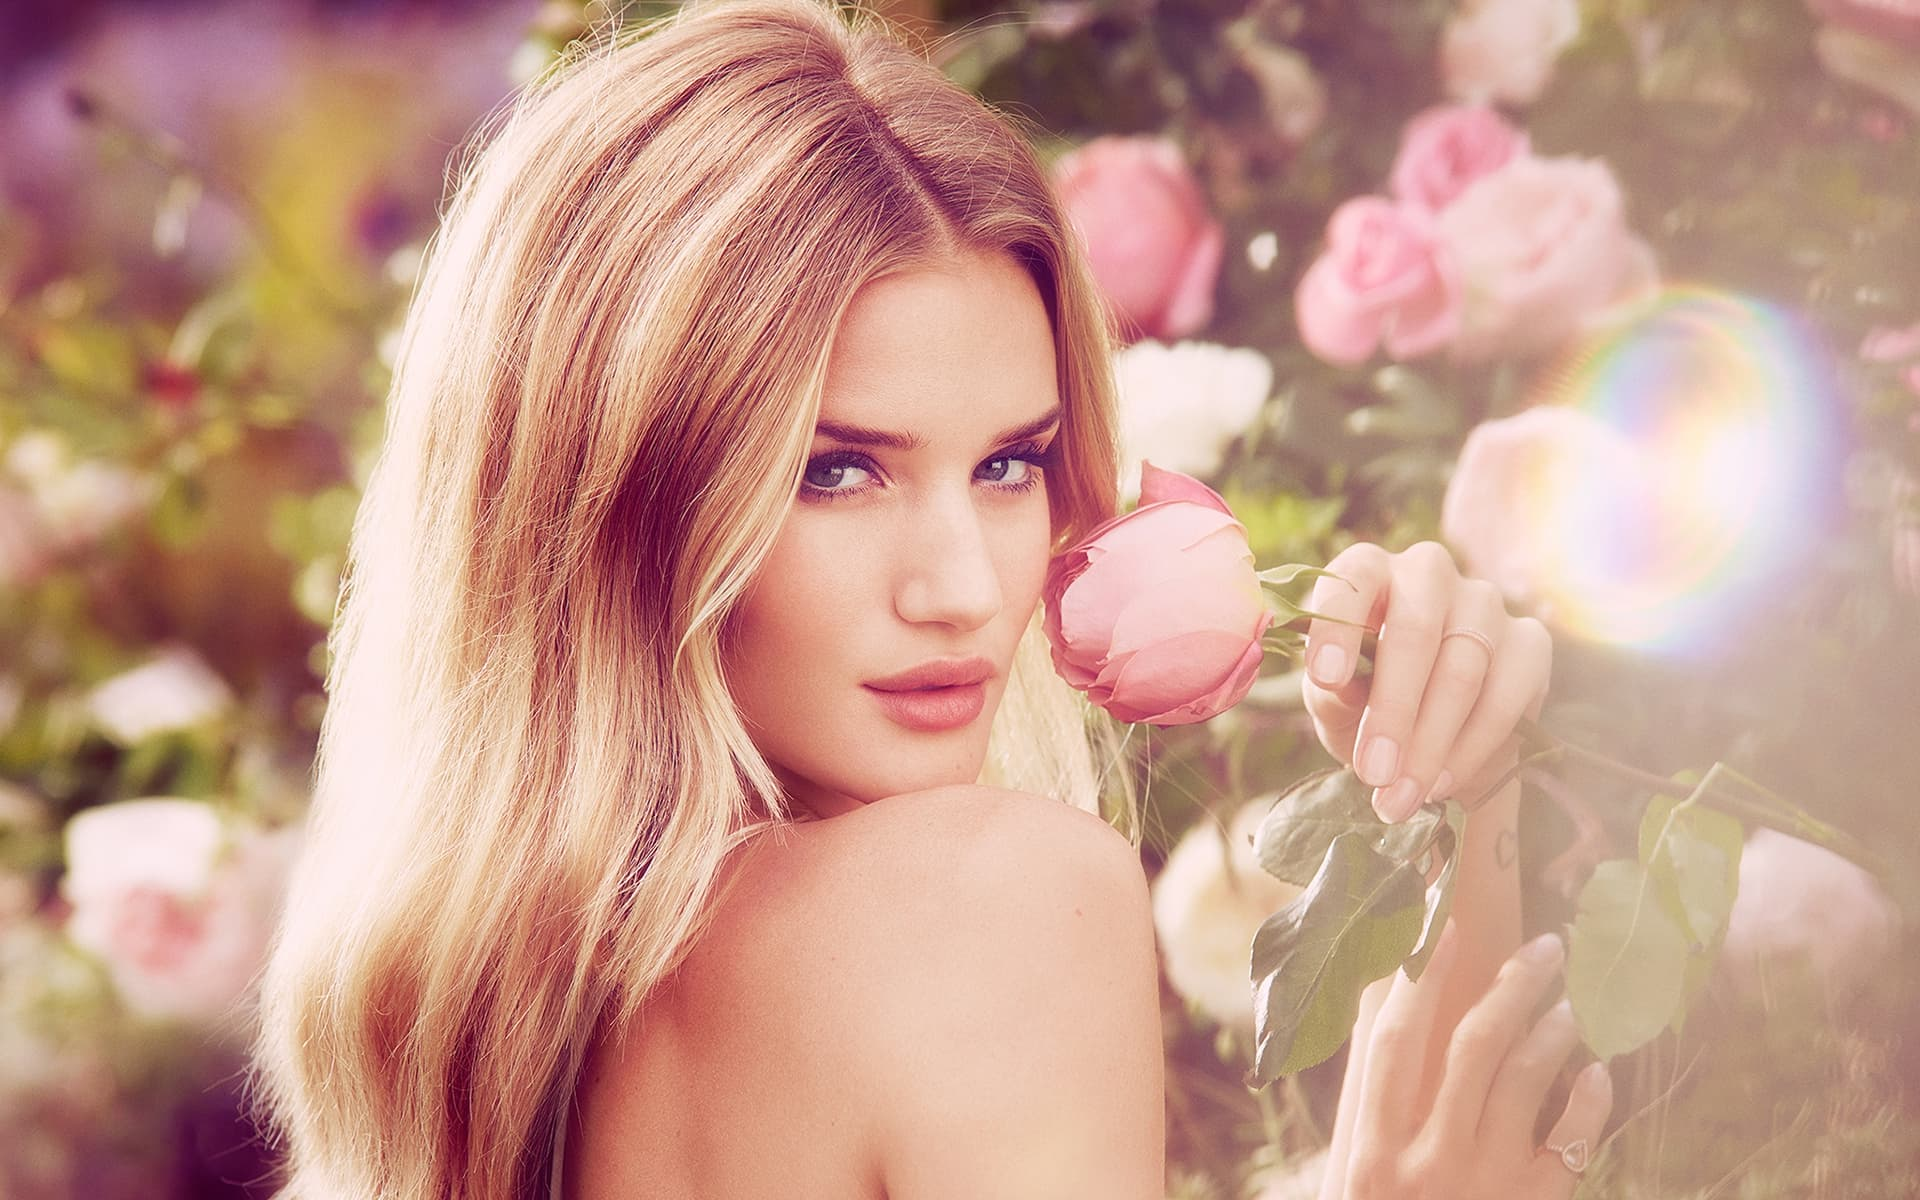 Rosie Huntington-Whiteley free wallpaper